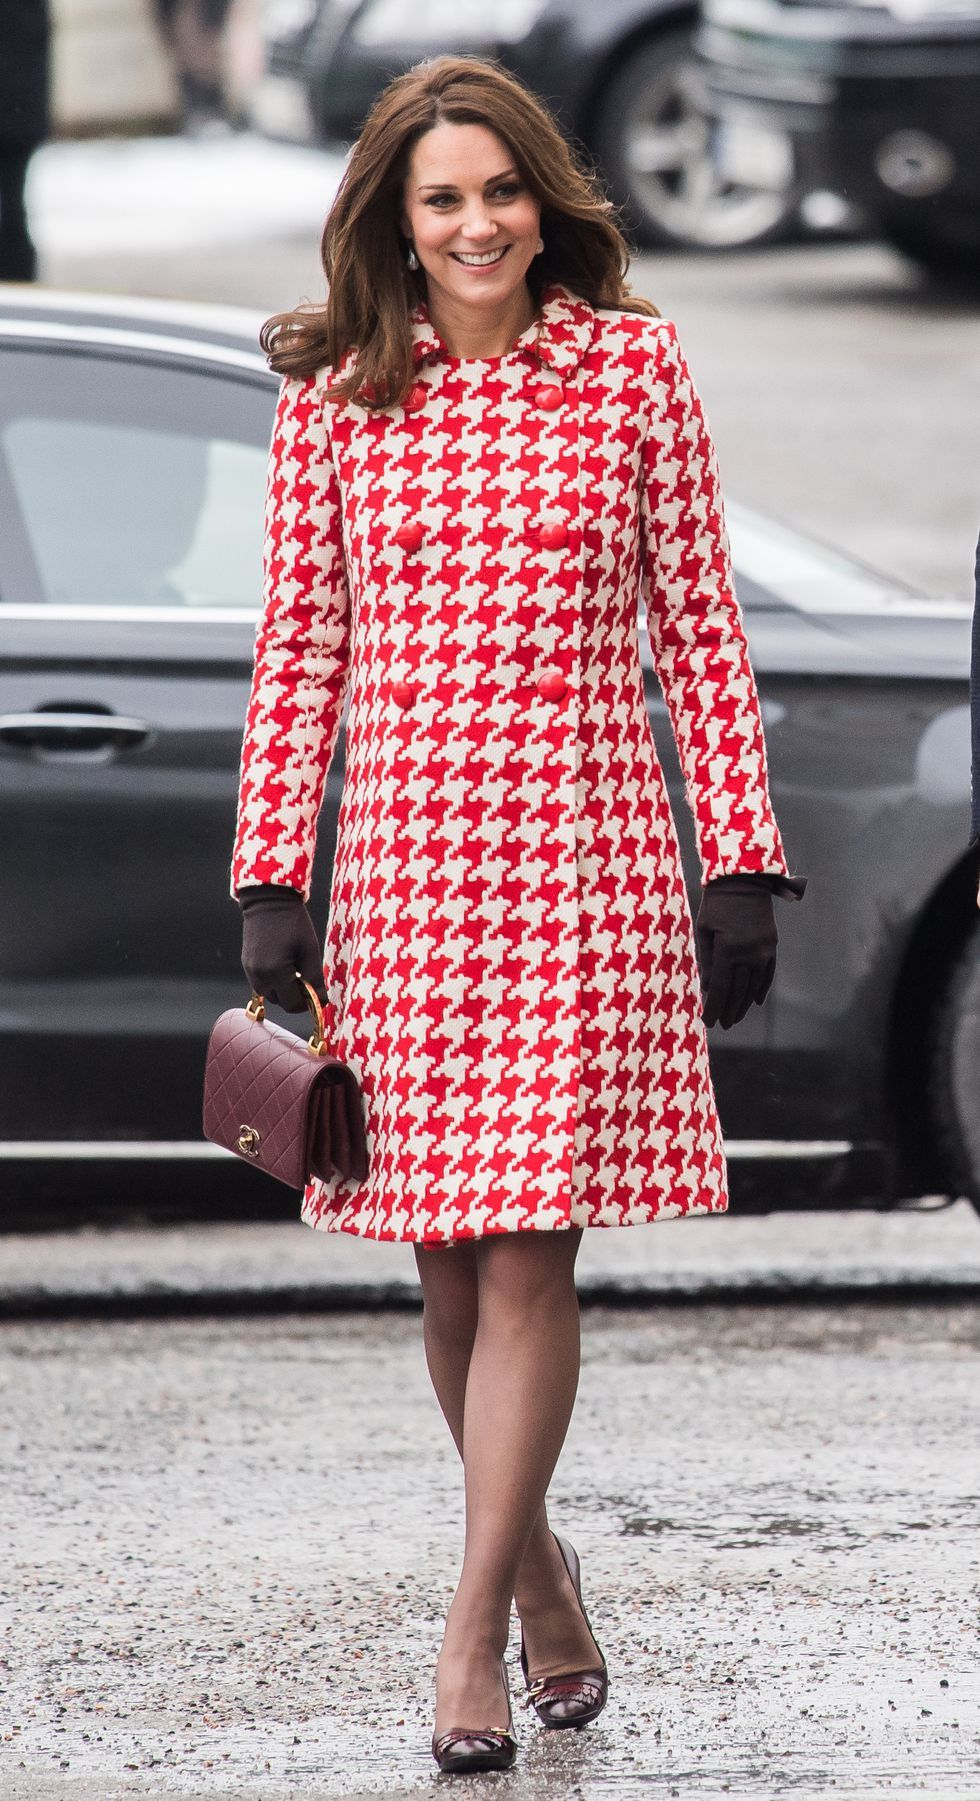 7fd3768e82b9a9 Kate Middleton's Best Style Moments - The Duchess of Cambridge's Most  Fashionable Outfits